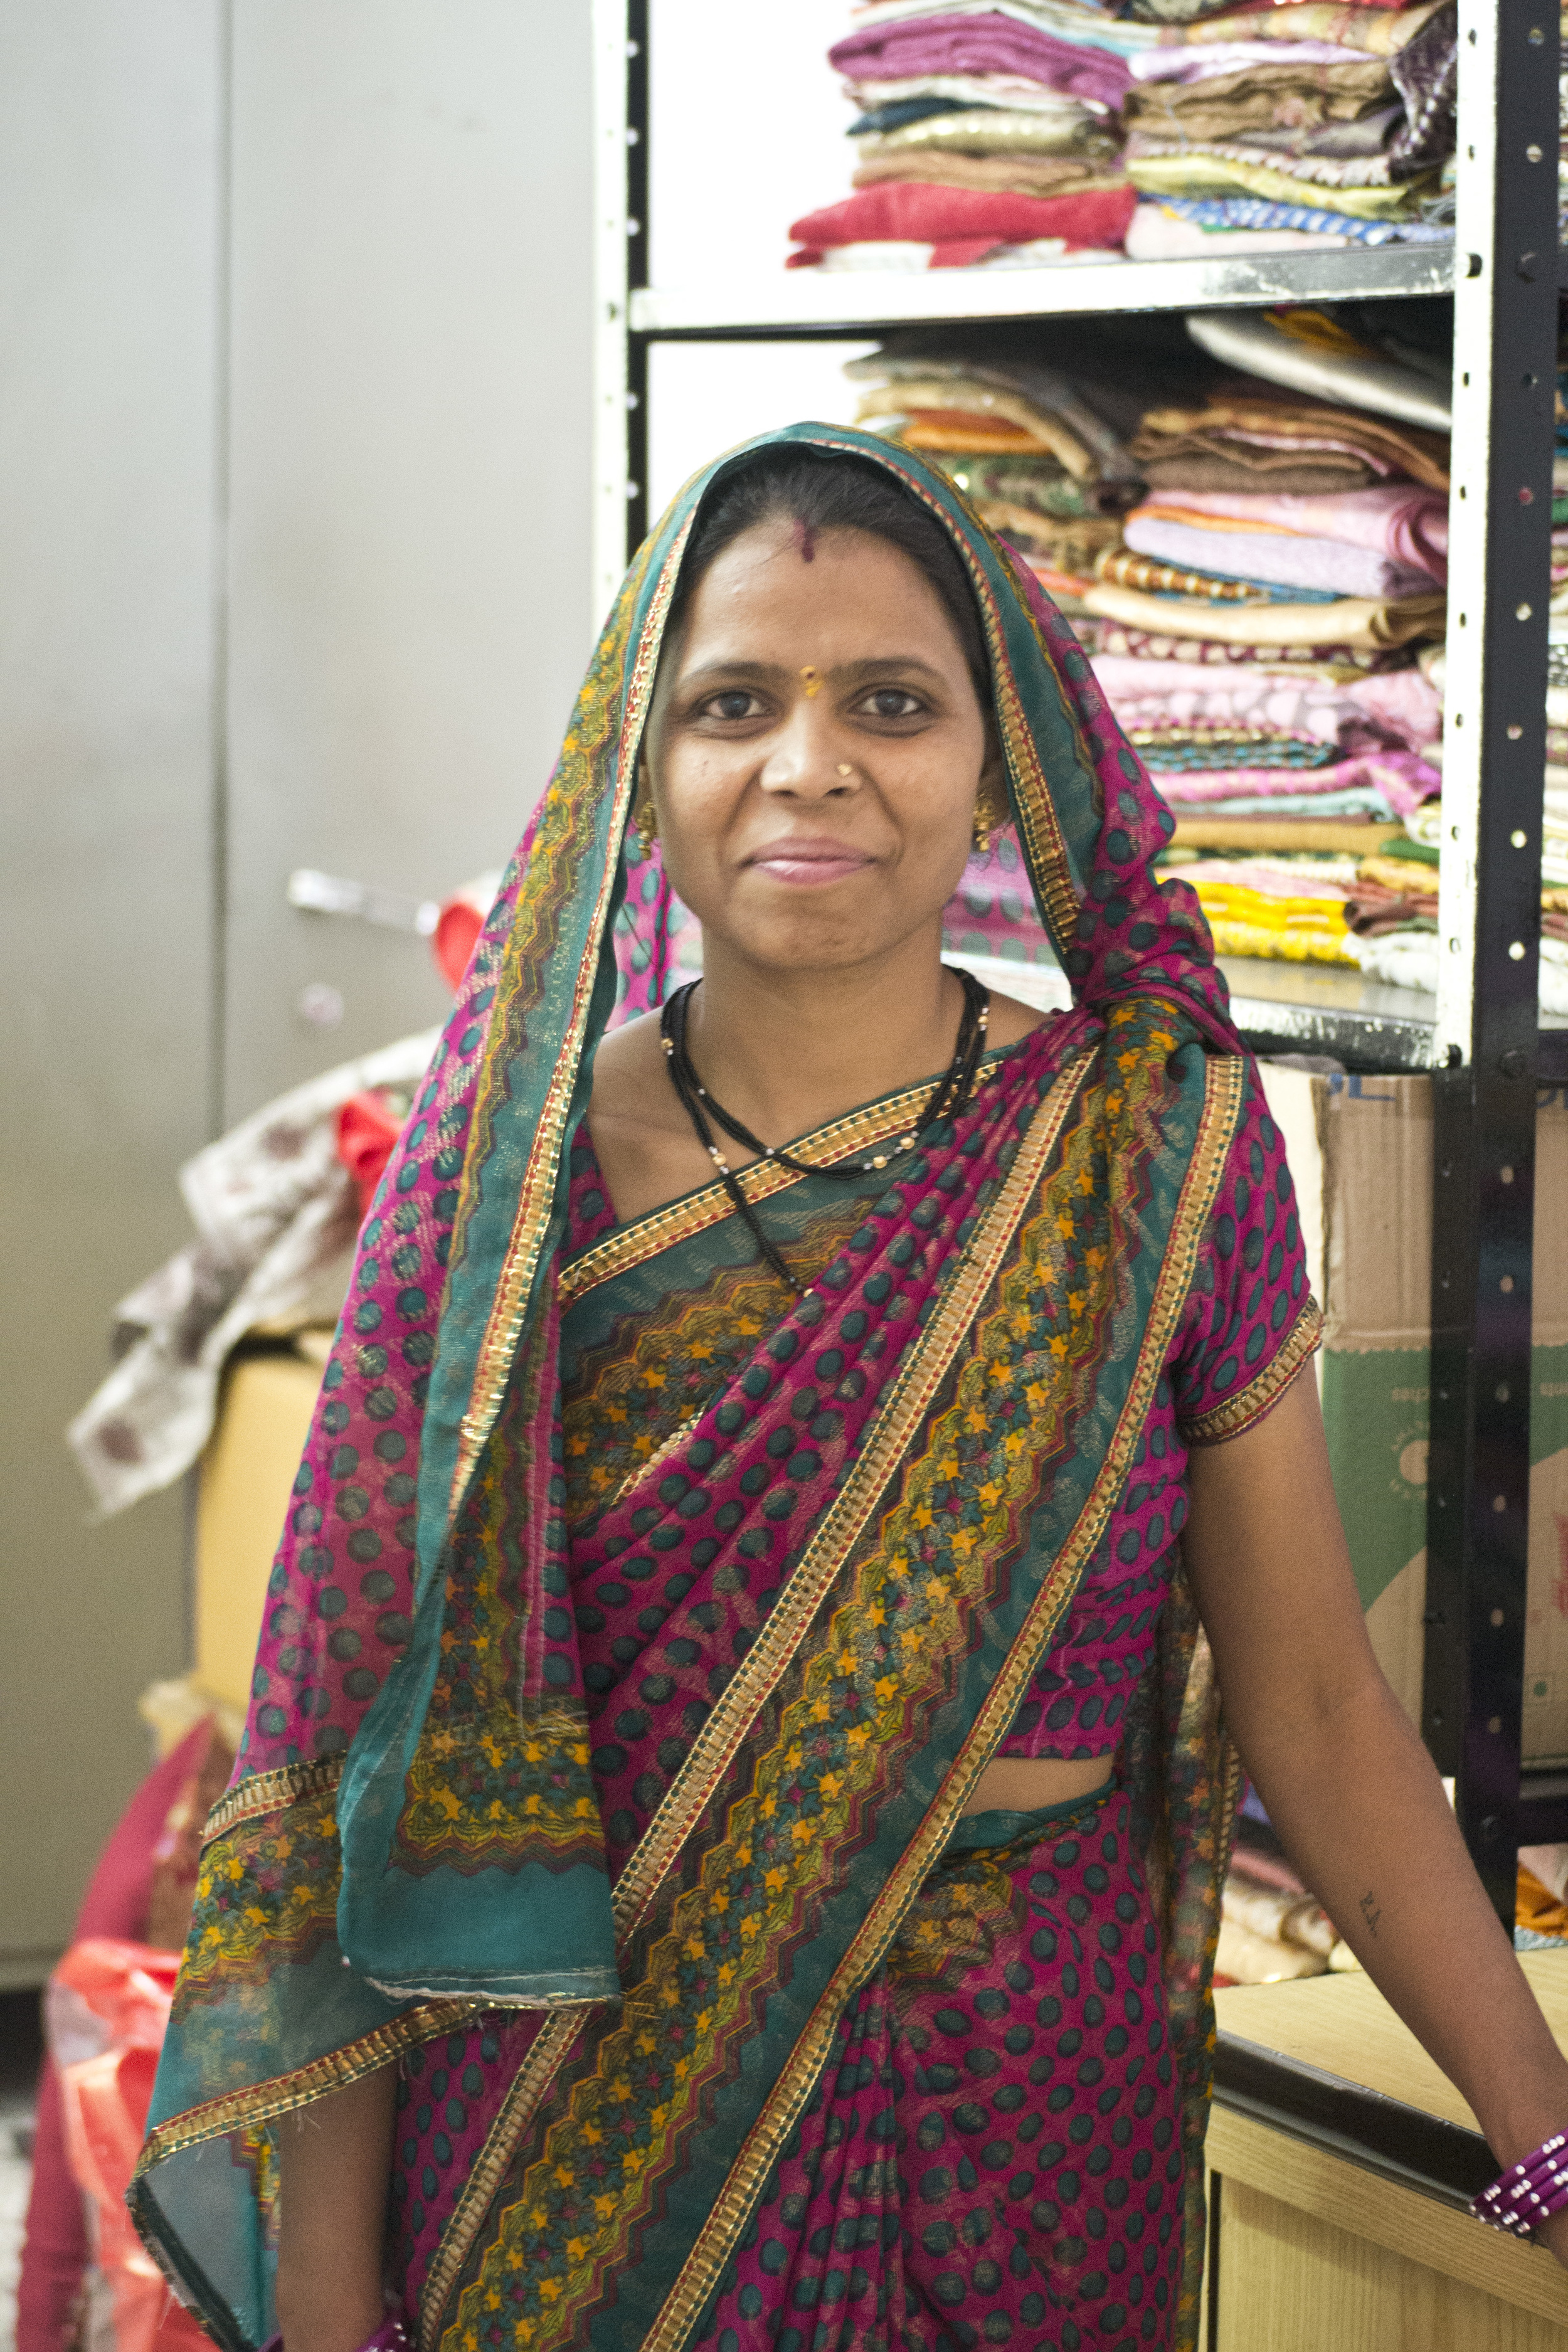 Given the tools, these women can access their potential